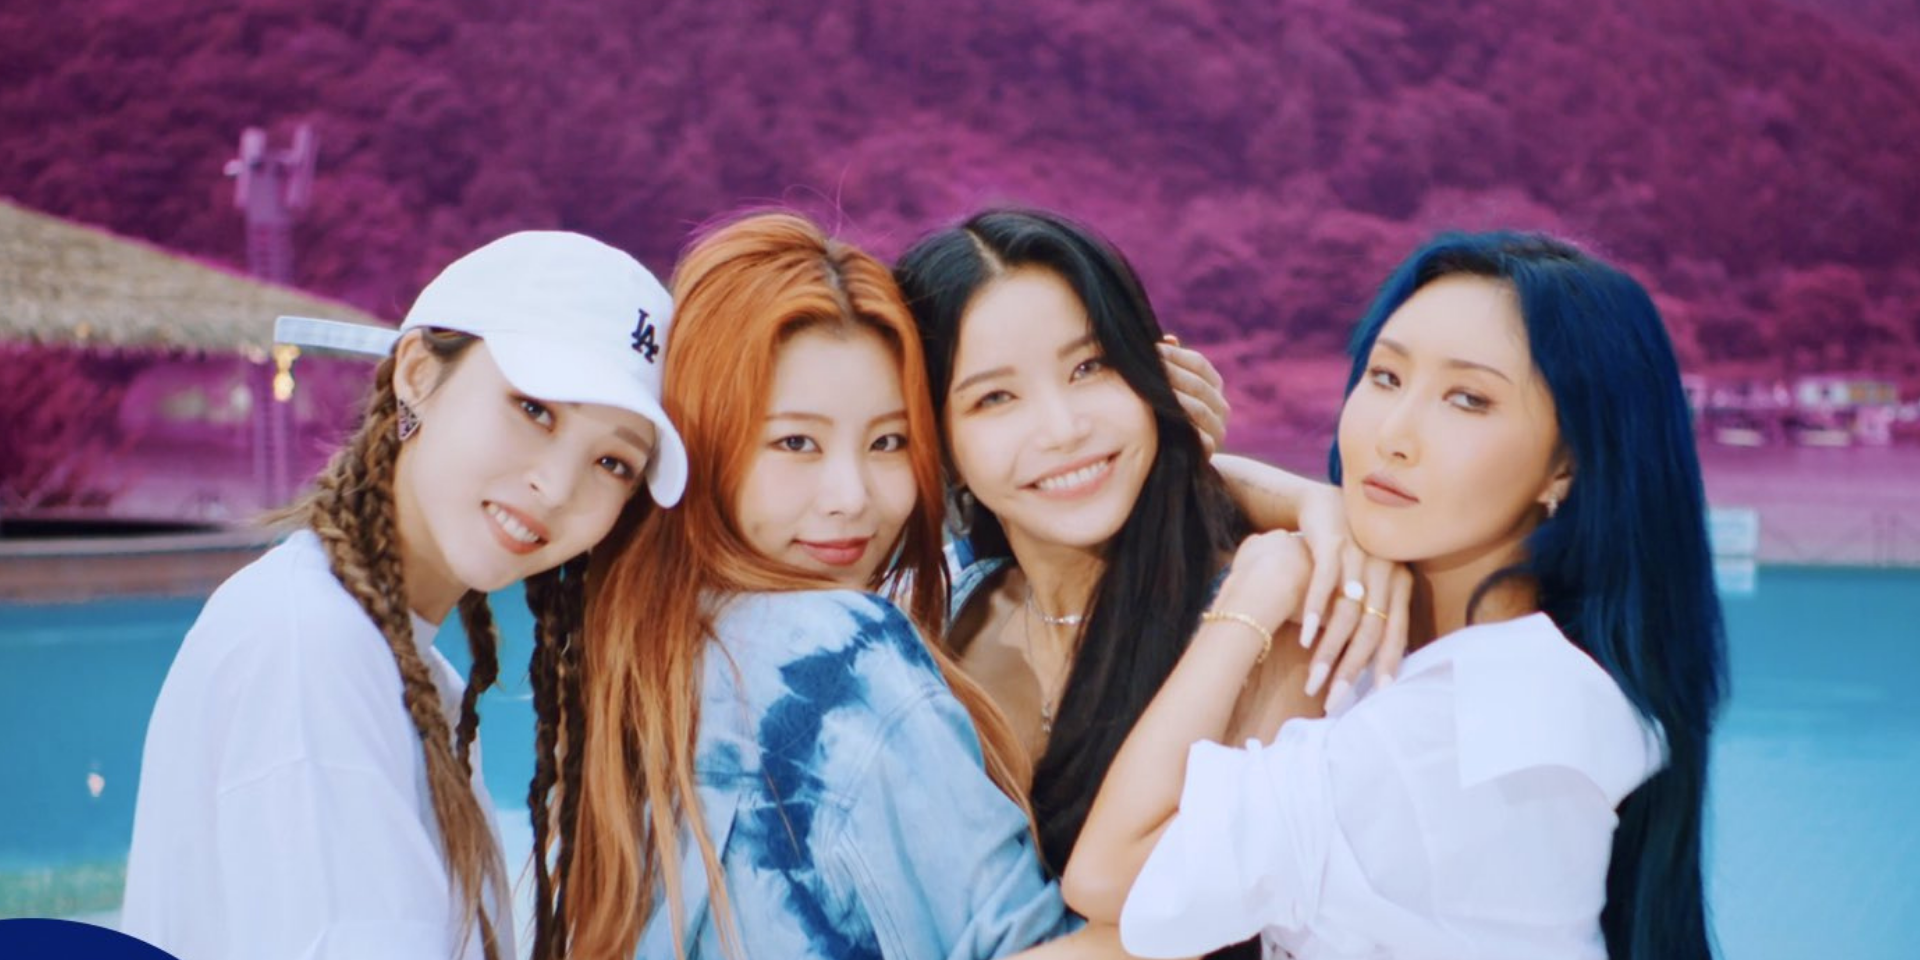 MAMAMOO reimagine old favourites in new album, 'I SAY MAMAMOO: THE BEST' – listen